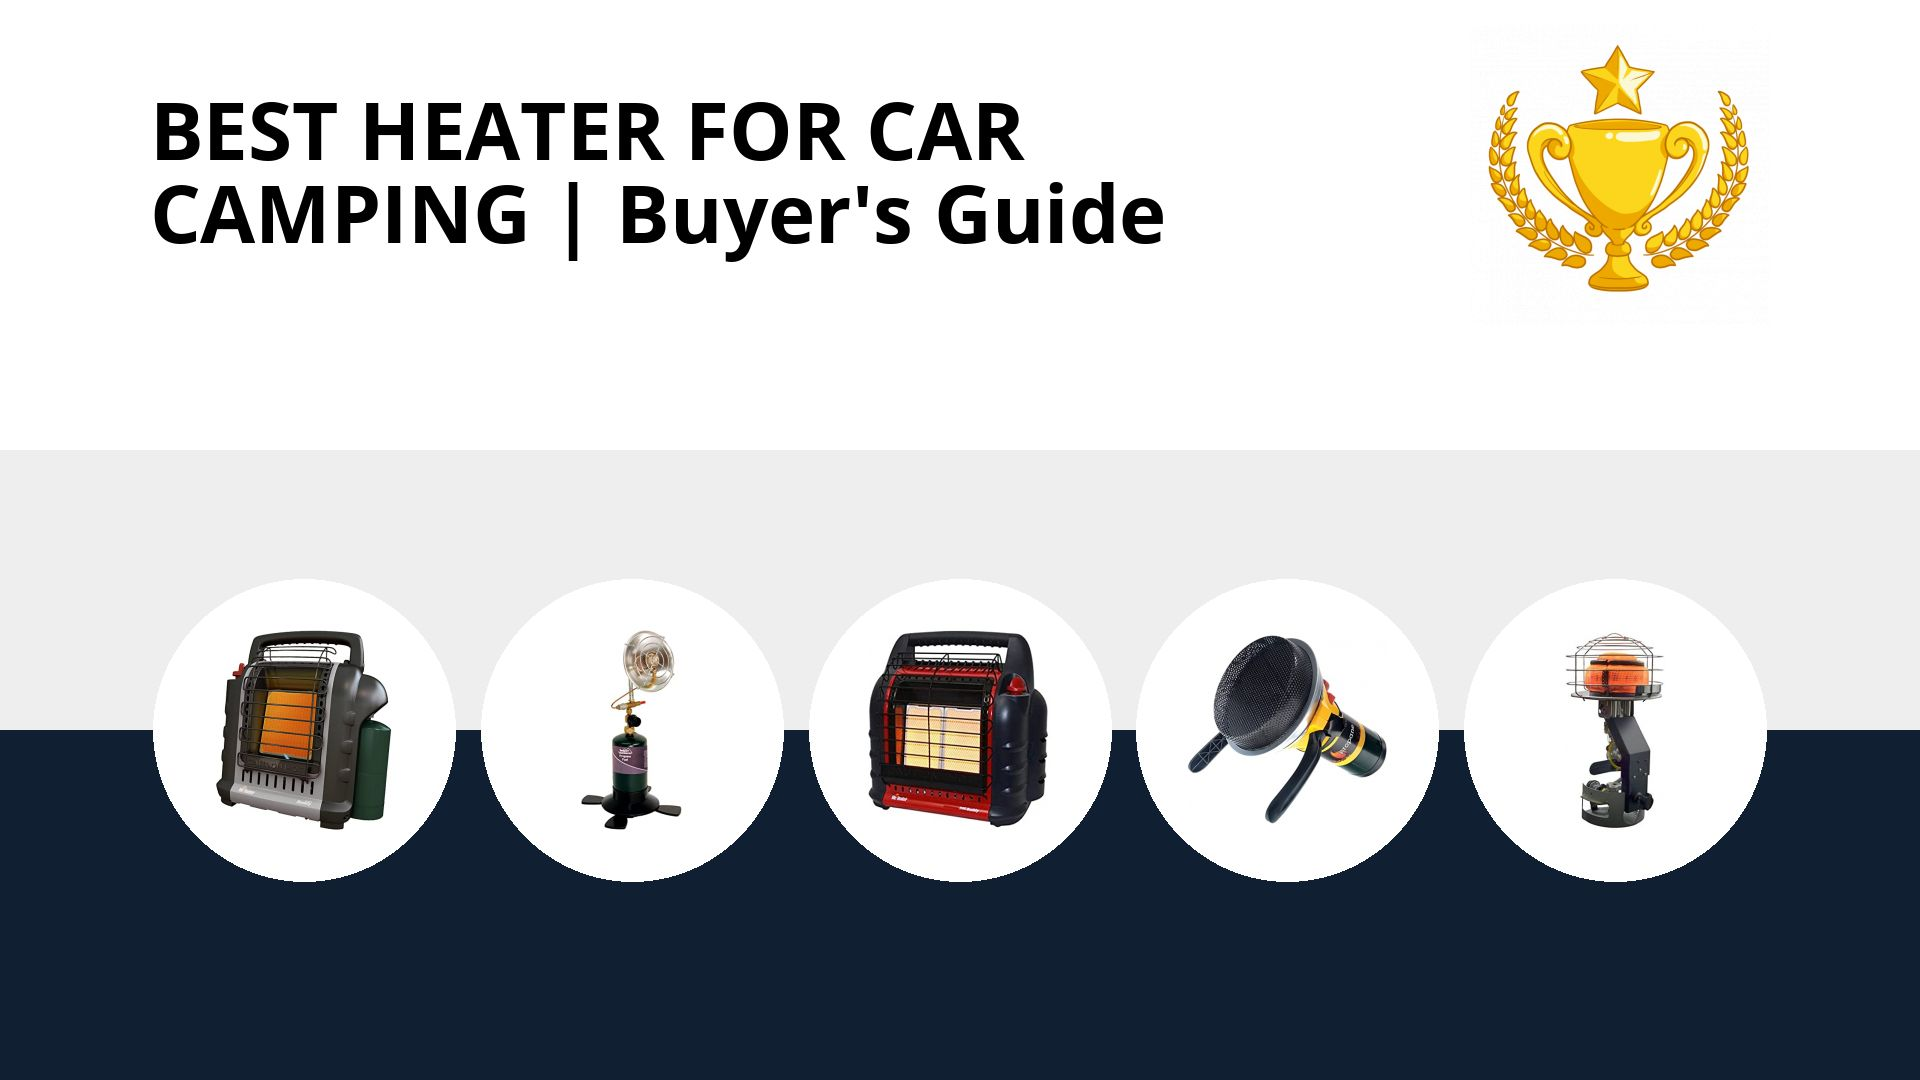 Best Heater For Car Camping: image